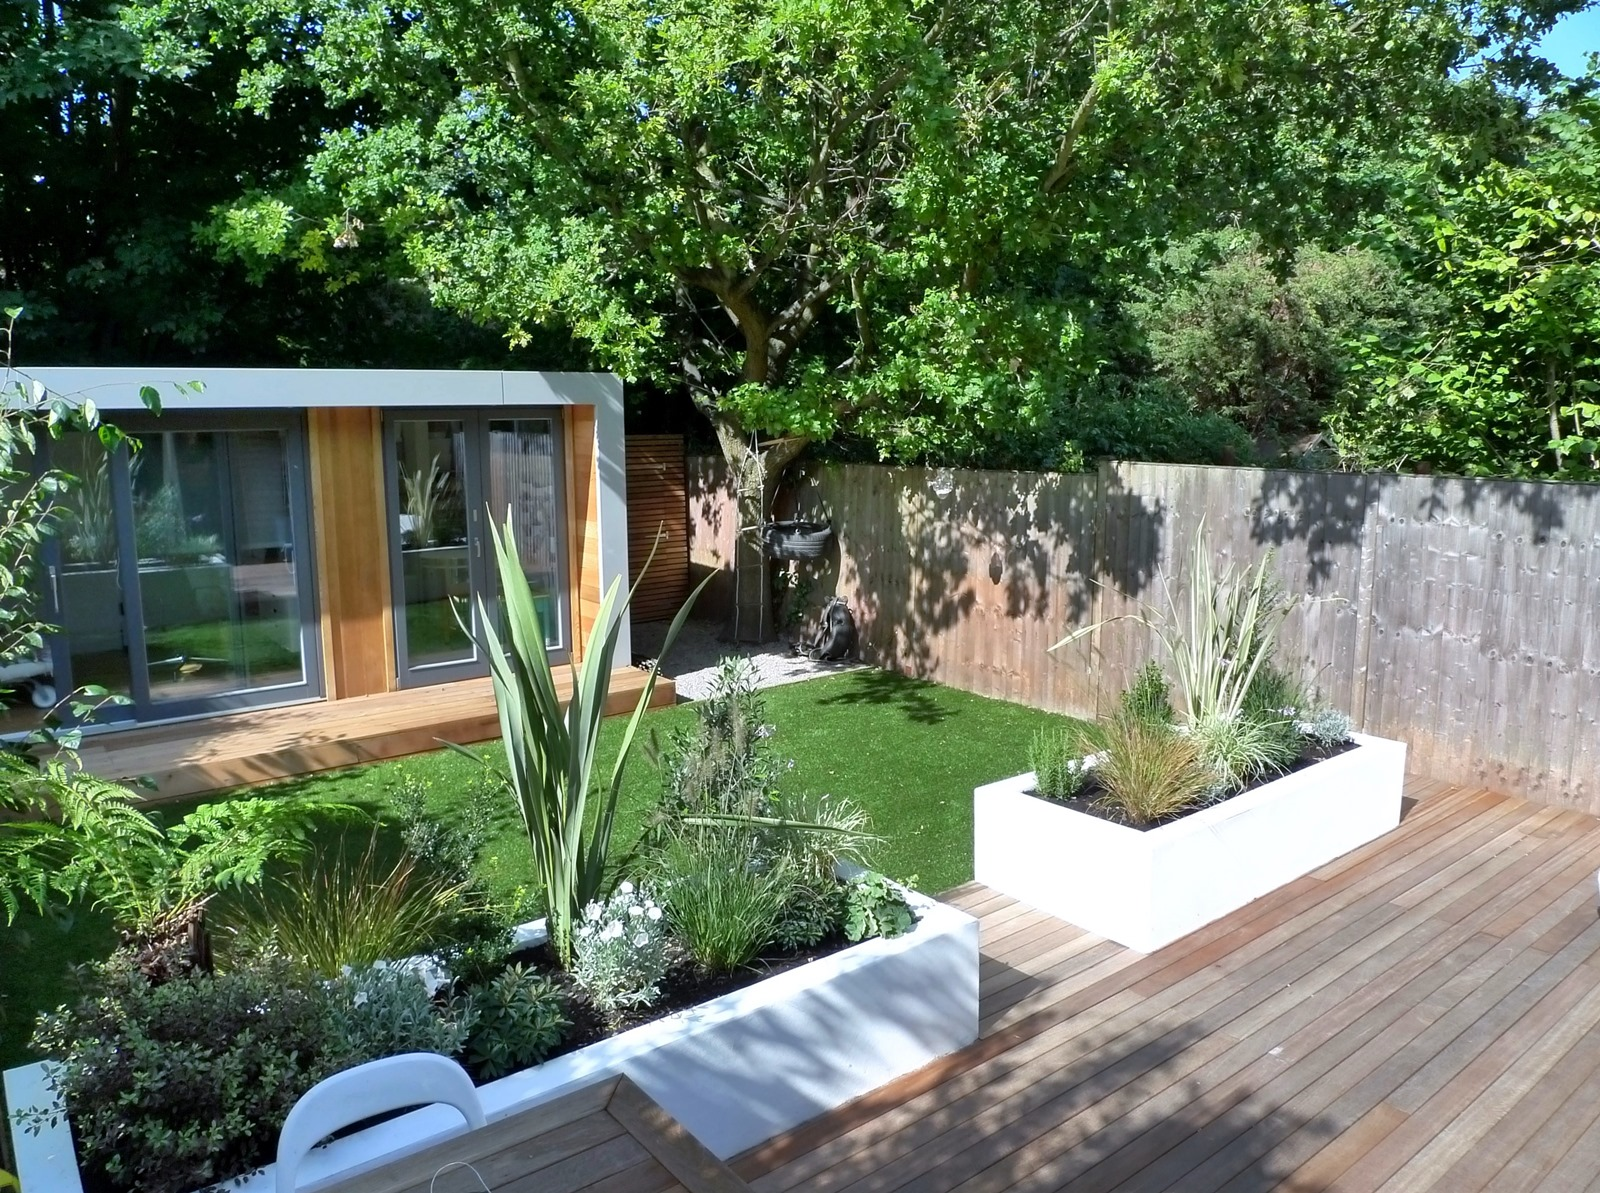 clapham and balham modern garden design decking planting artificial lawn grass hardwood privacy